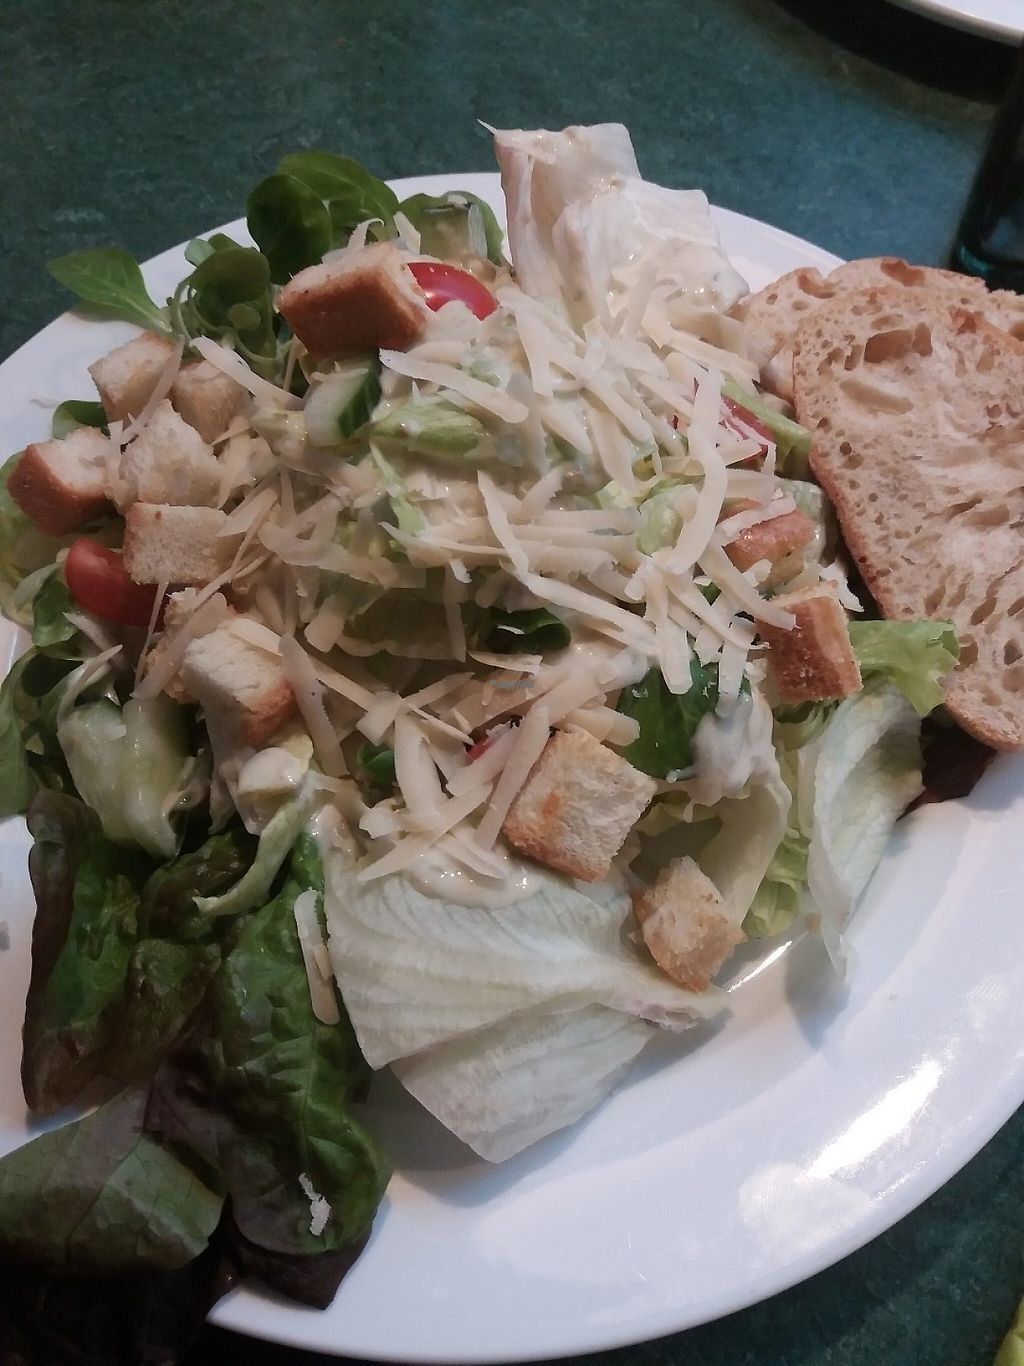 """Photo of CLOSED: Molly & Alf  by <a href=""""/members/profile/Smoelfine"""">Smoelfine</a> <br/>ceasar's salad <br/> December 16, 2016  - <a href='/contact/abuse/image/73367/202004'>Report</a>"""